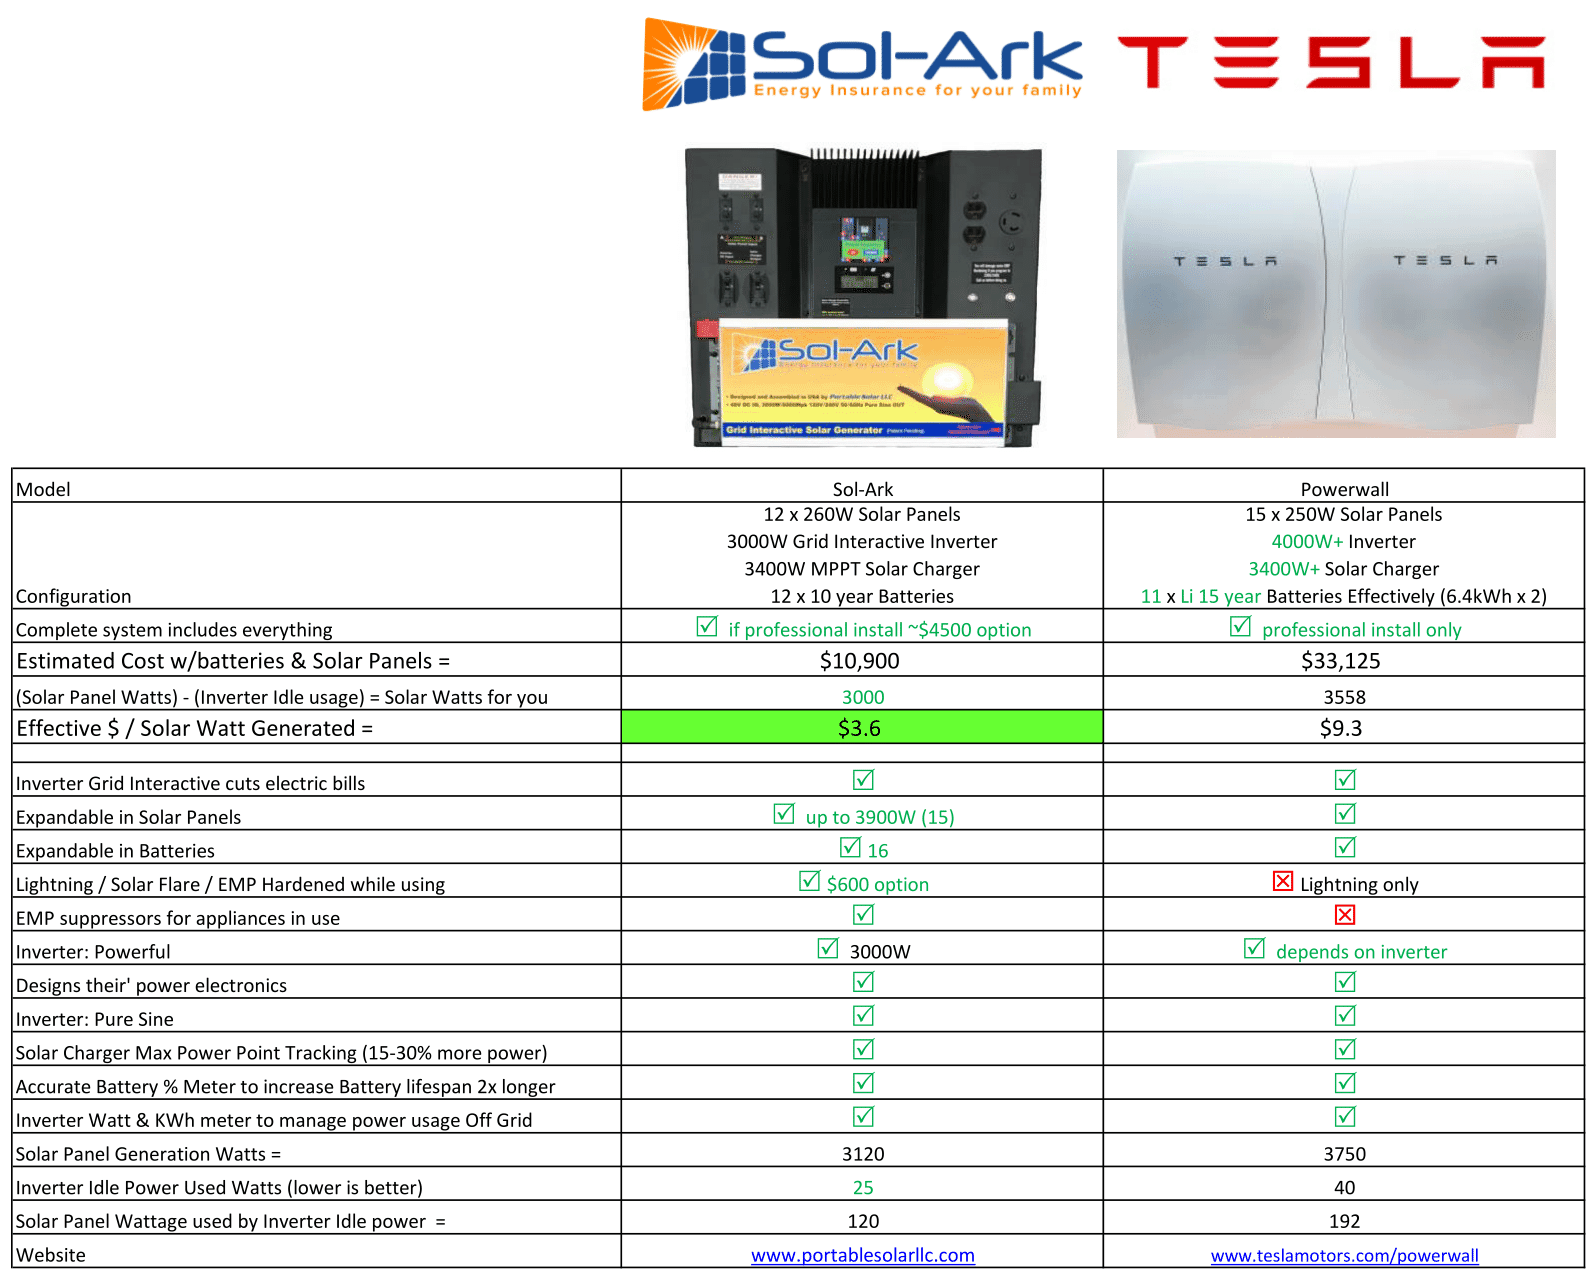 Compare Sol-Ark to the Tesla PowerWall